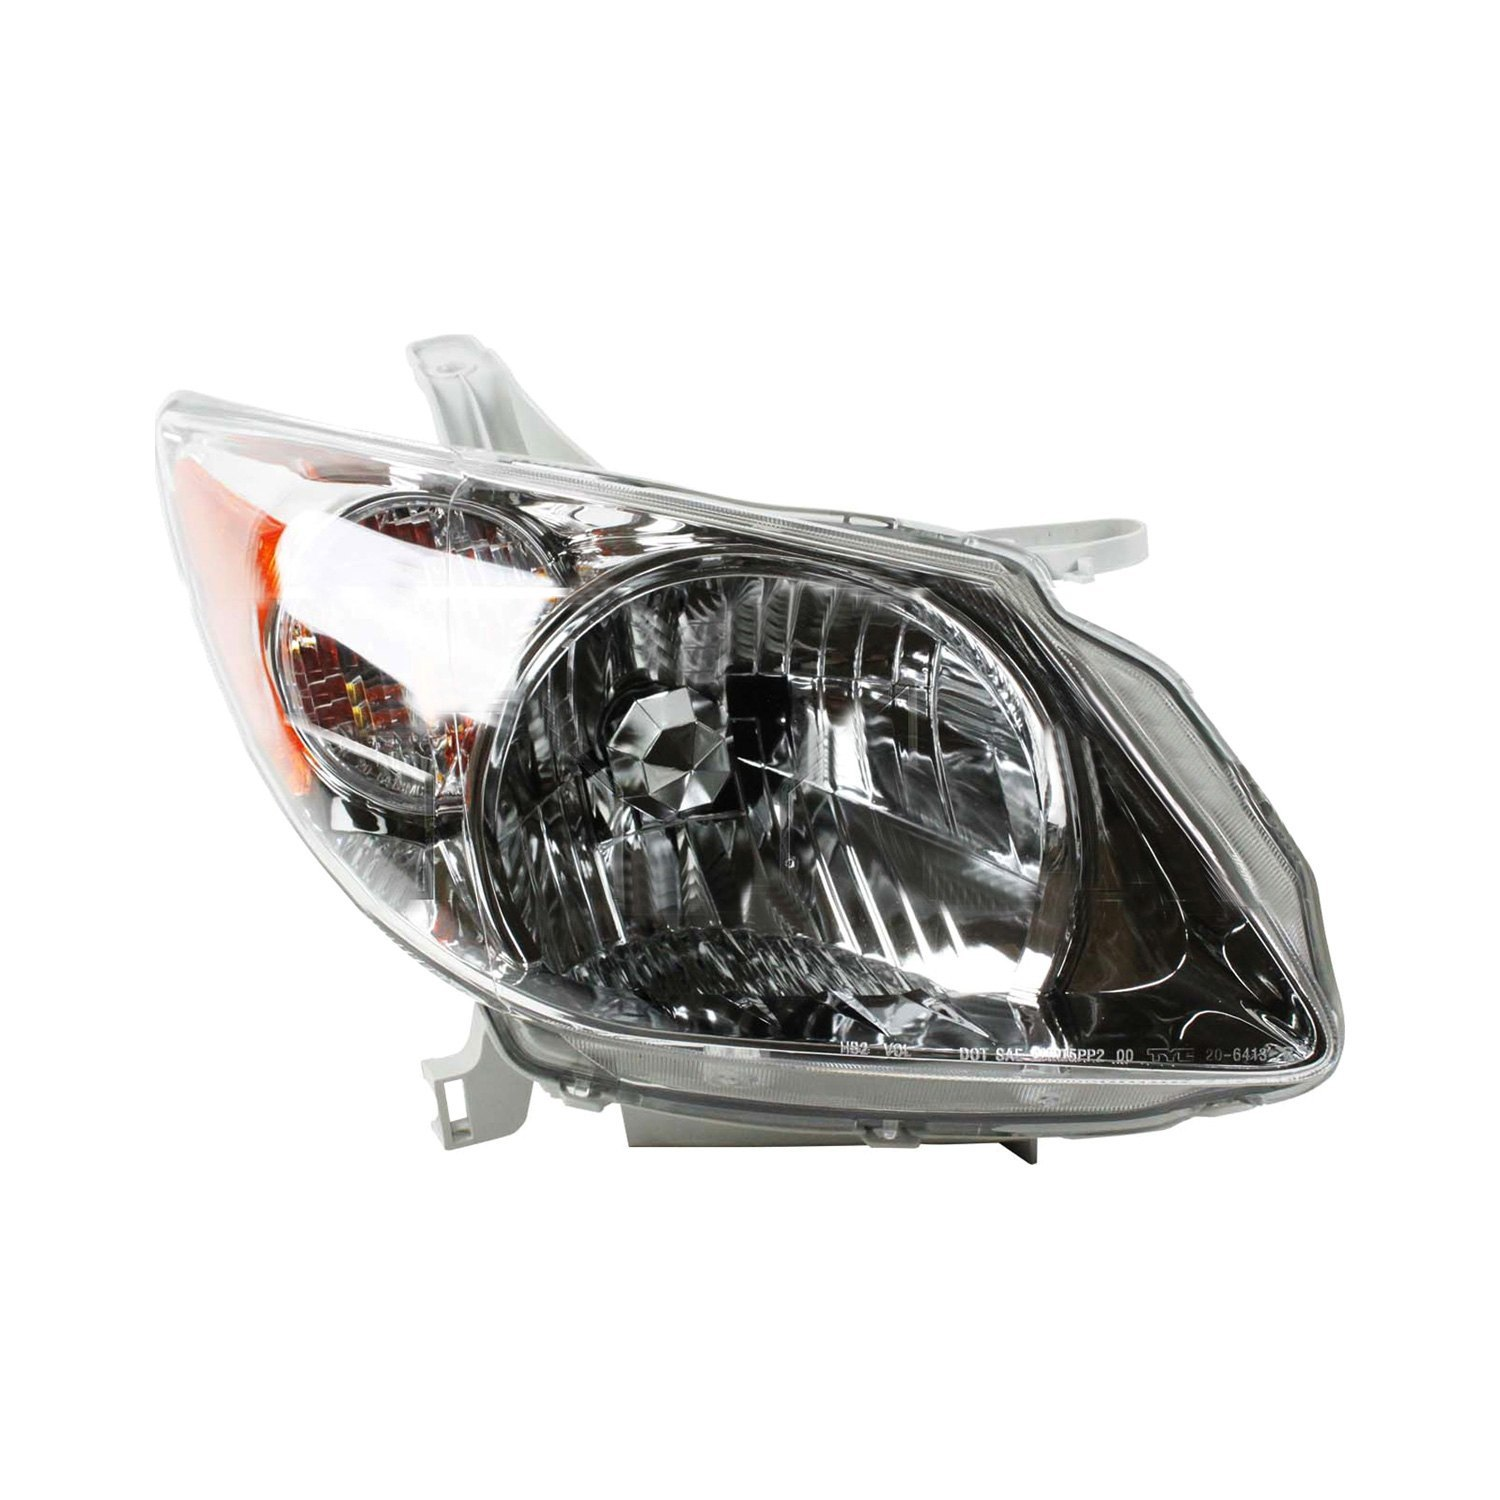 Details About For Pontiac Vibe 2005 2008 Tyc 20 6413 90 1 Penger Side Replacement Headlight